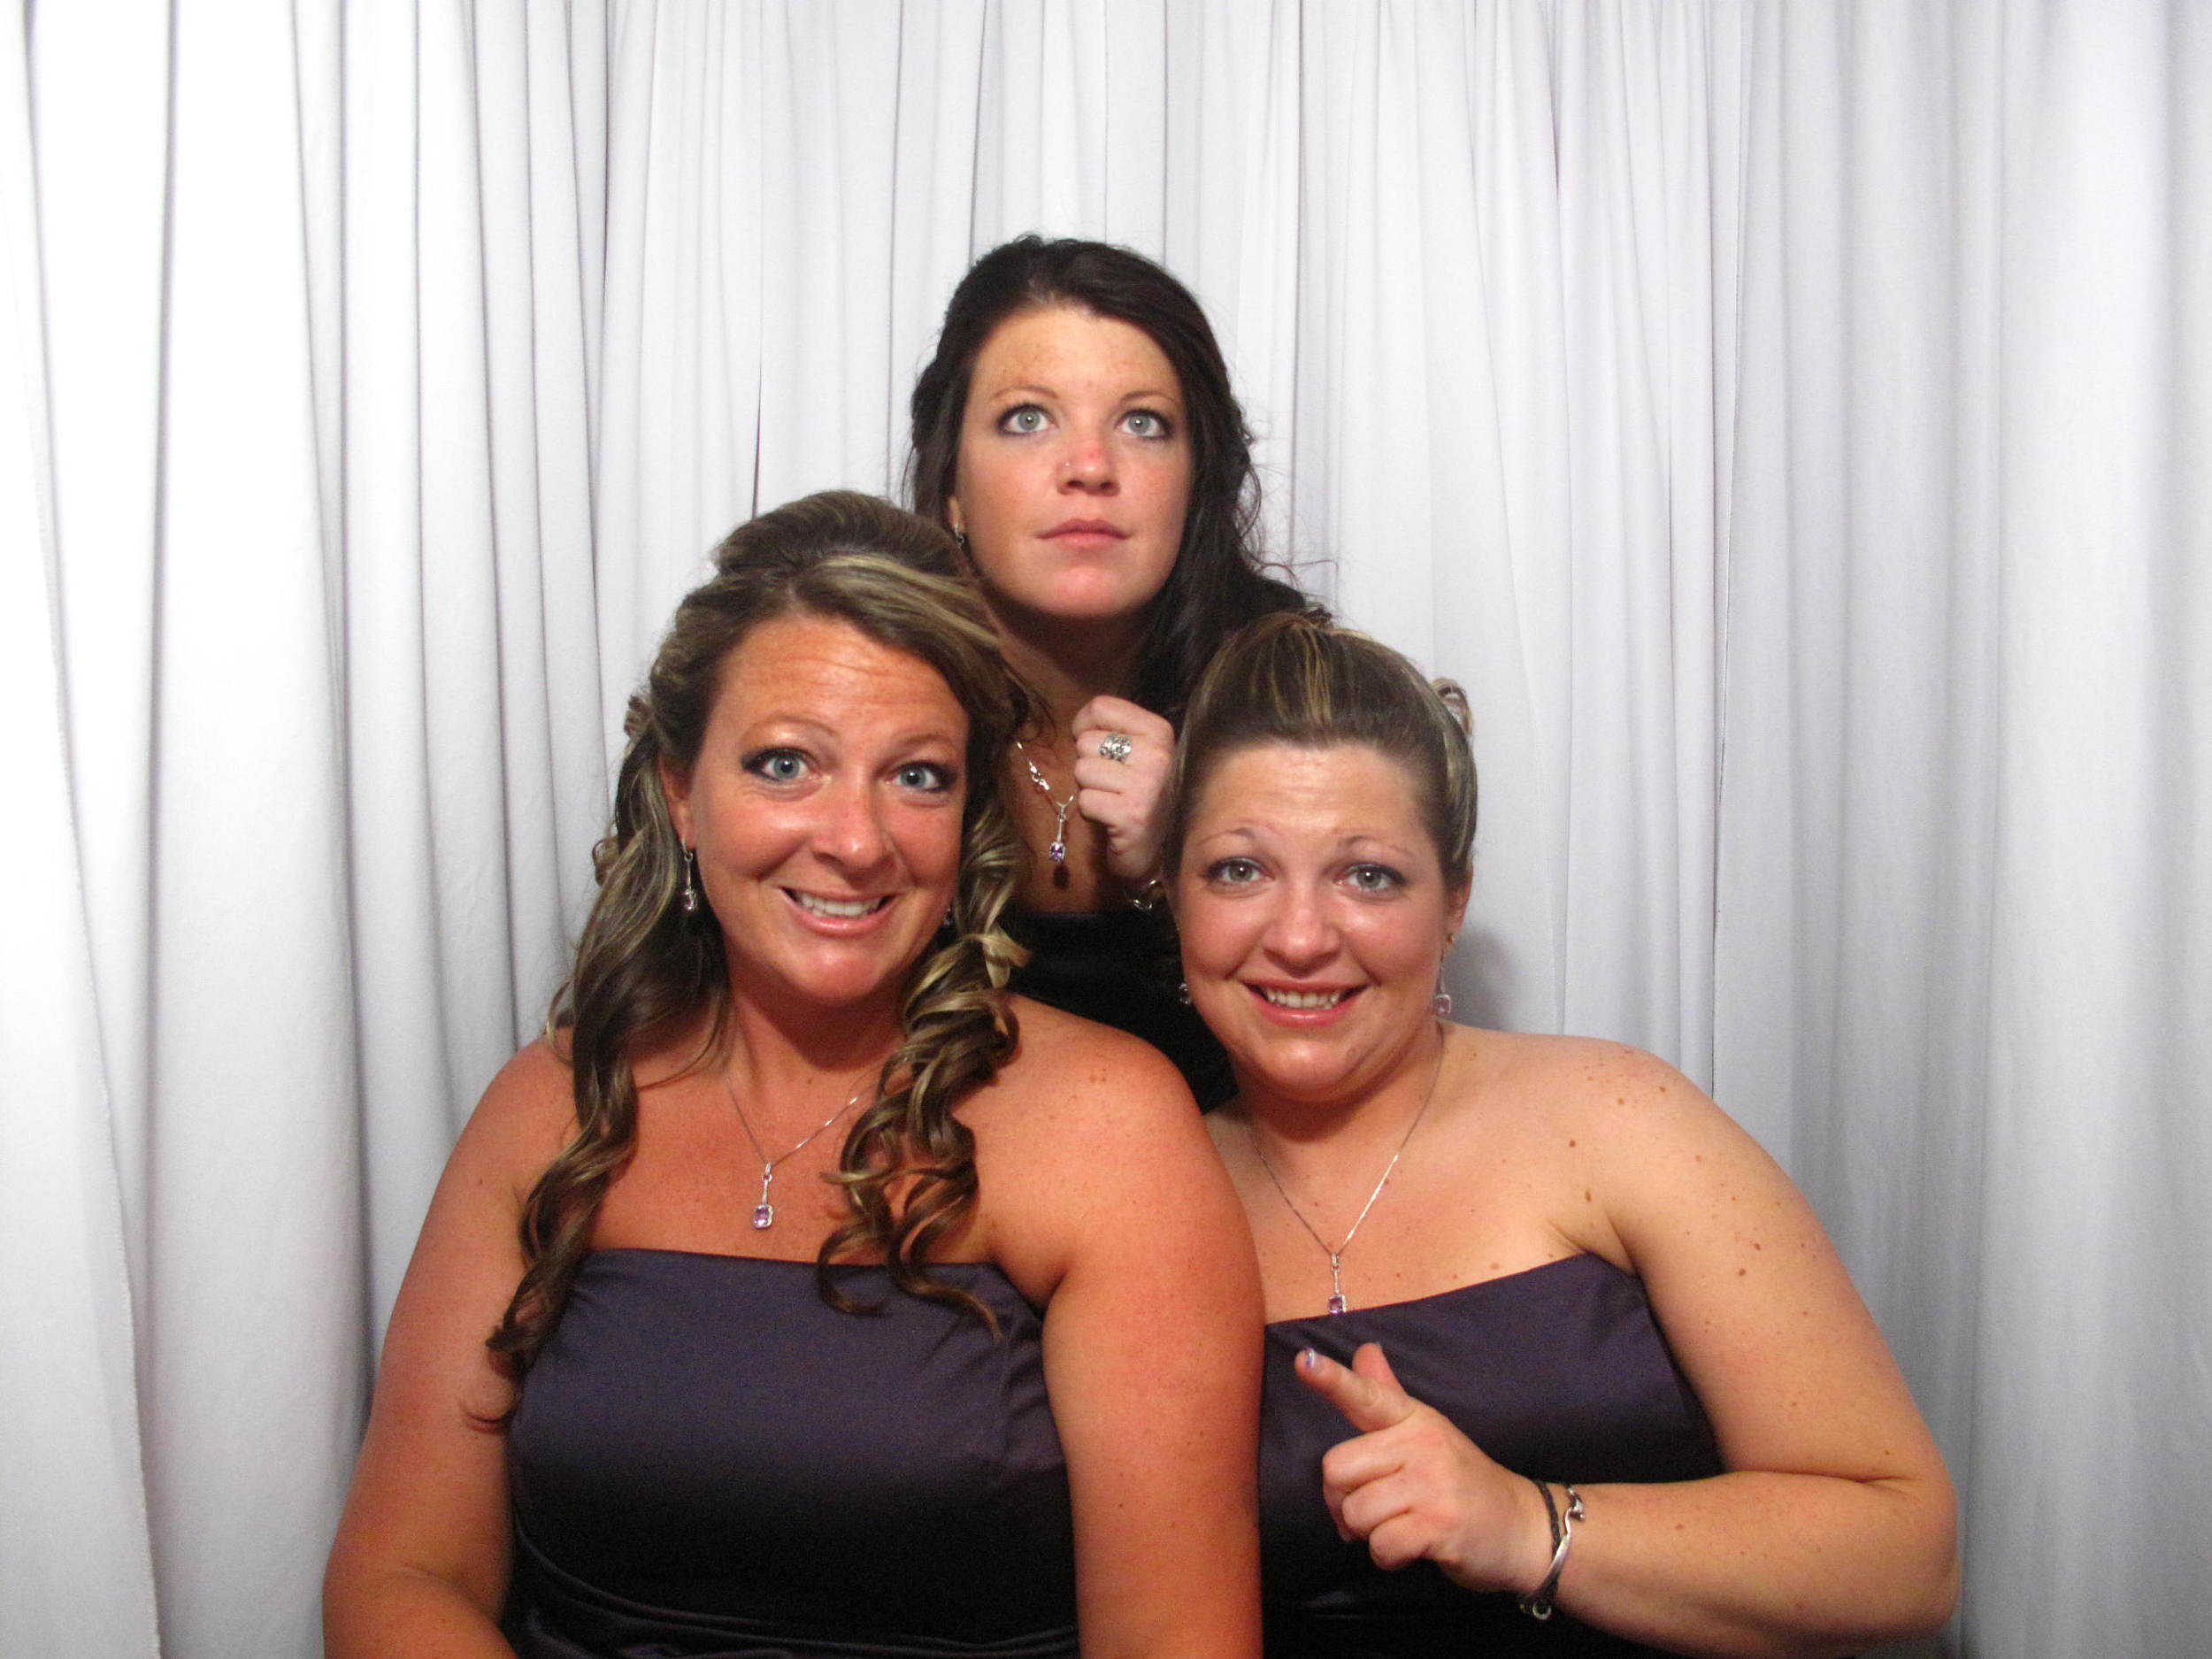 Snapshot Photobooths at the Quality Inn in Toms River, NJ